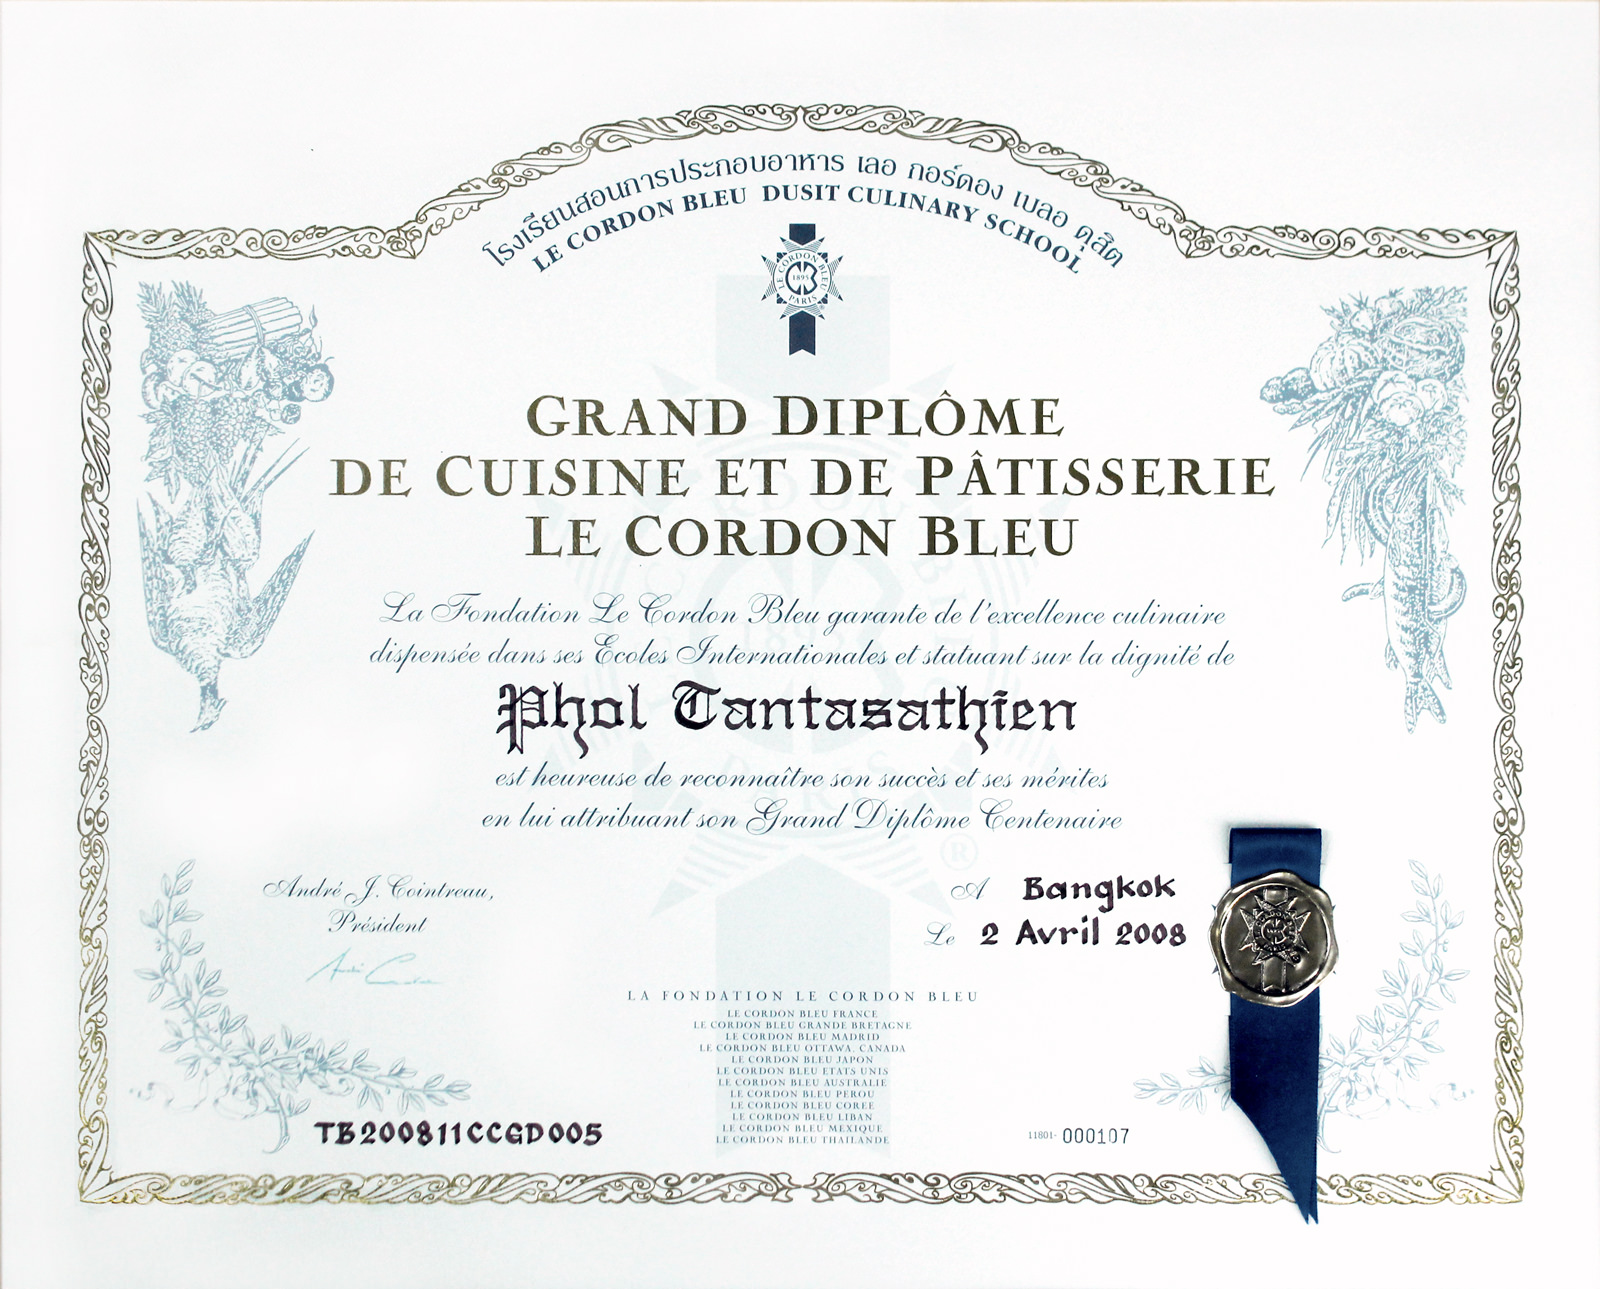 brand endorsement tantasathien  grand diploma a distinction bestowed upon those who graduate the top scores in both courses that moment was a very nice start to my aspirations